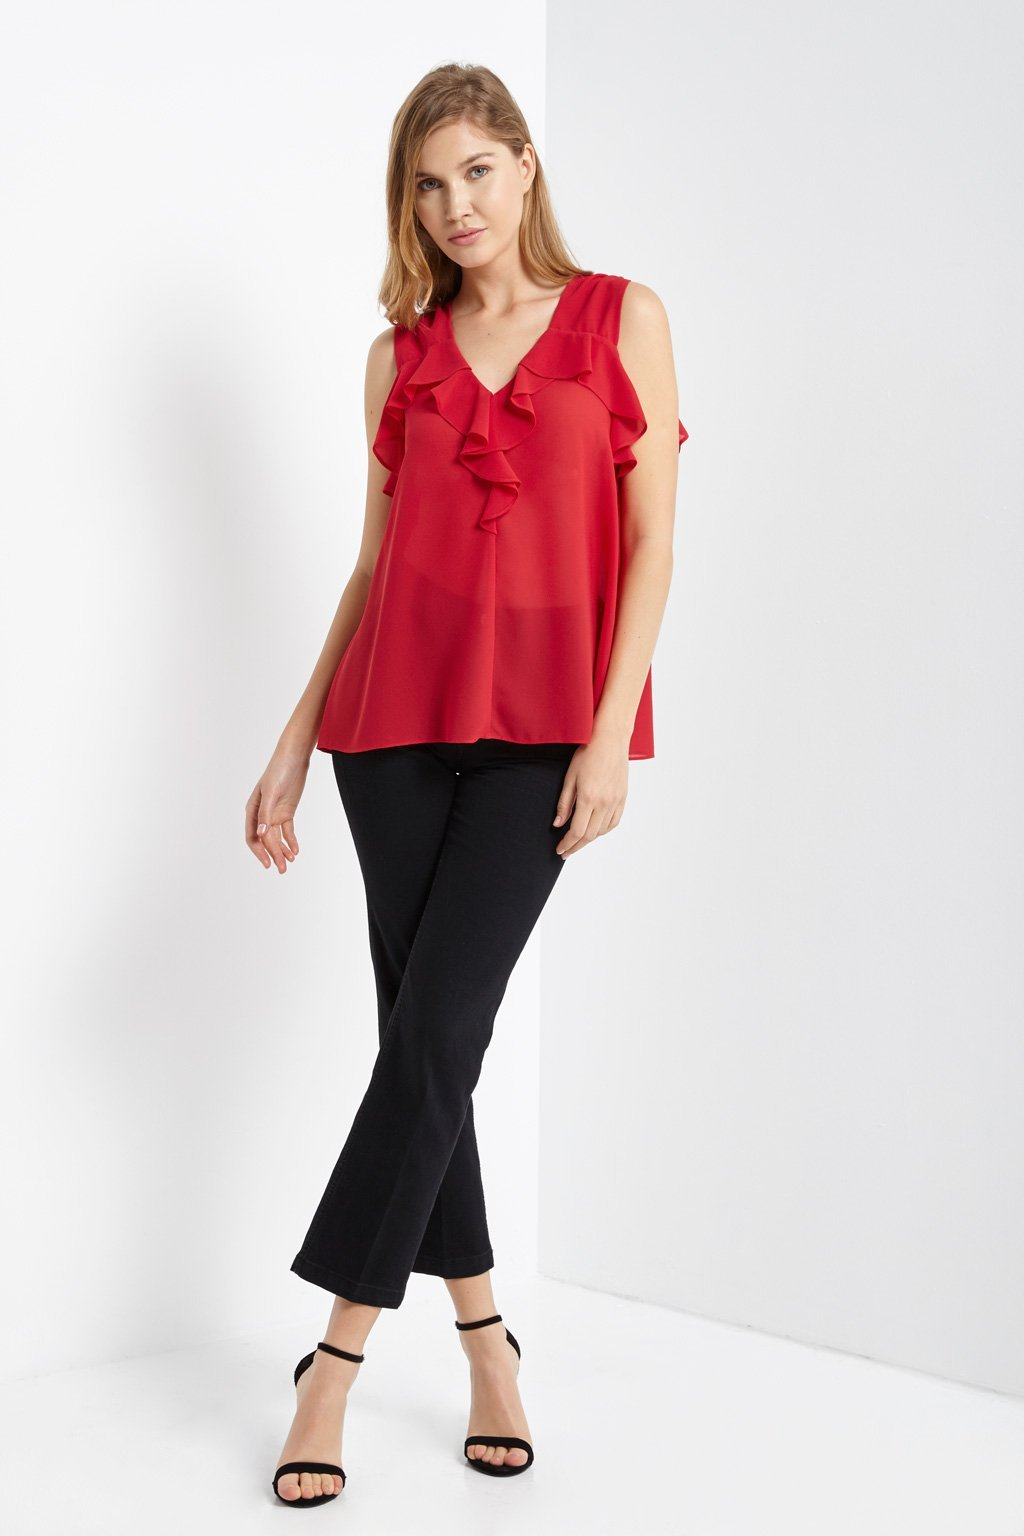 Poshsquare Tops Lima Ruffle Tie Top